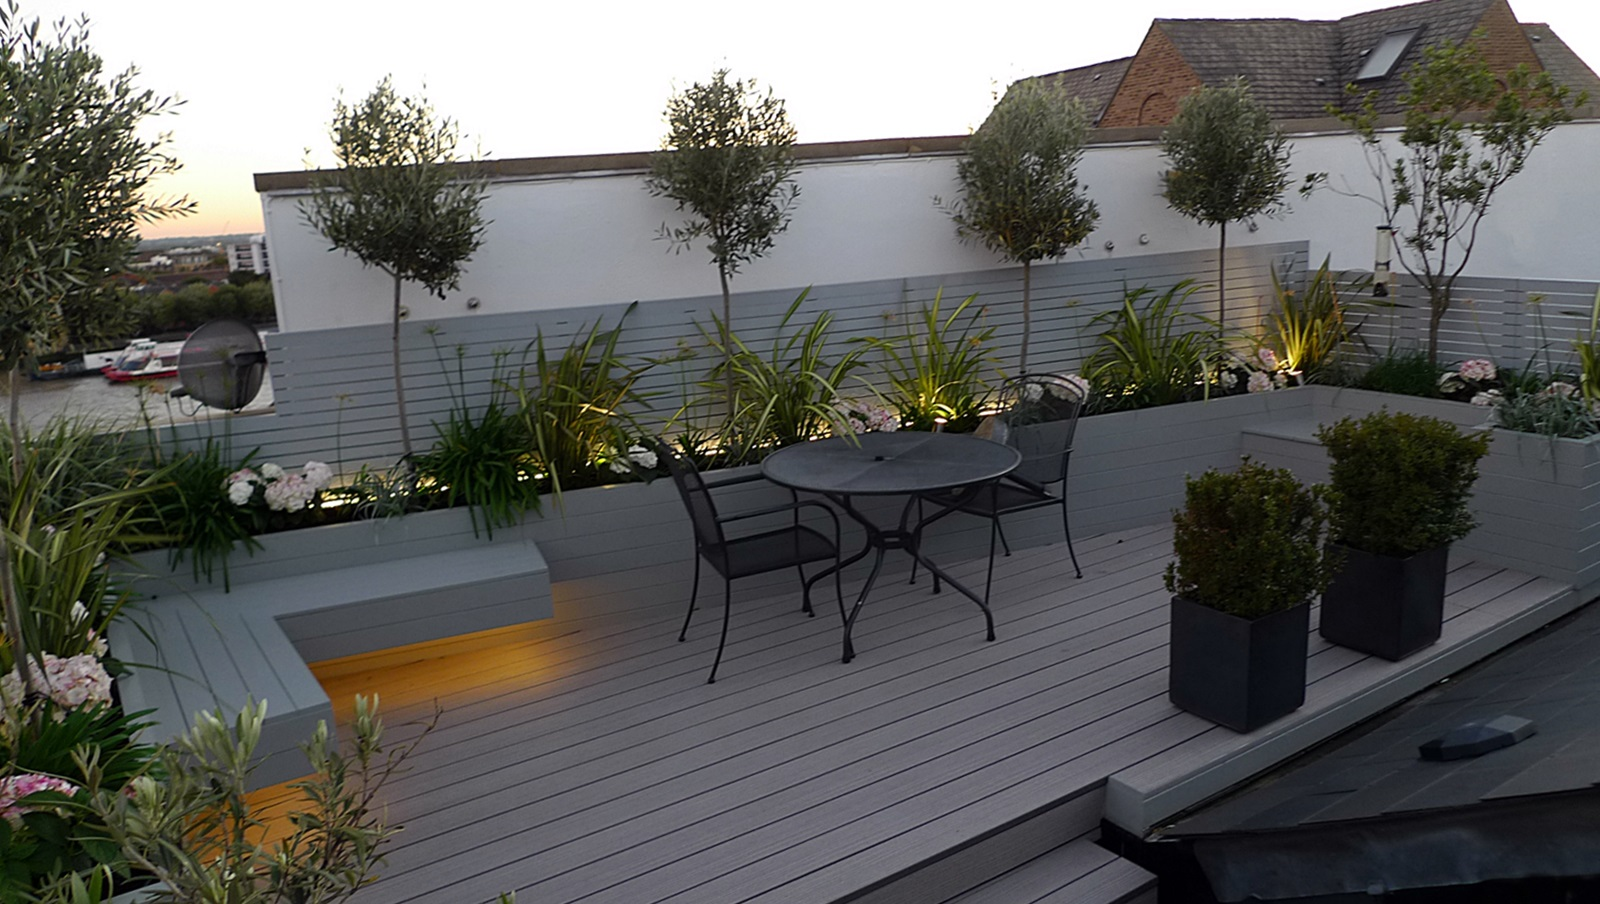 Roof terrace modern garden design london garden blog for Terrace layout